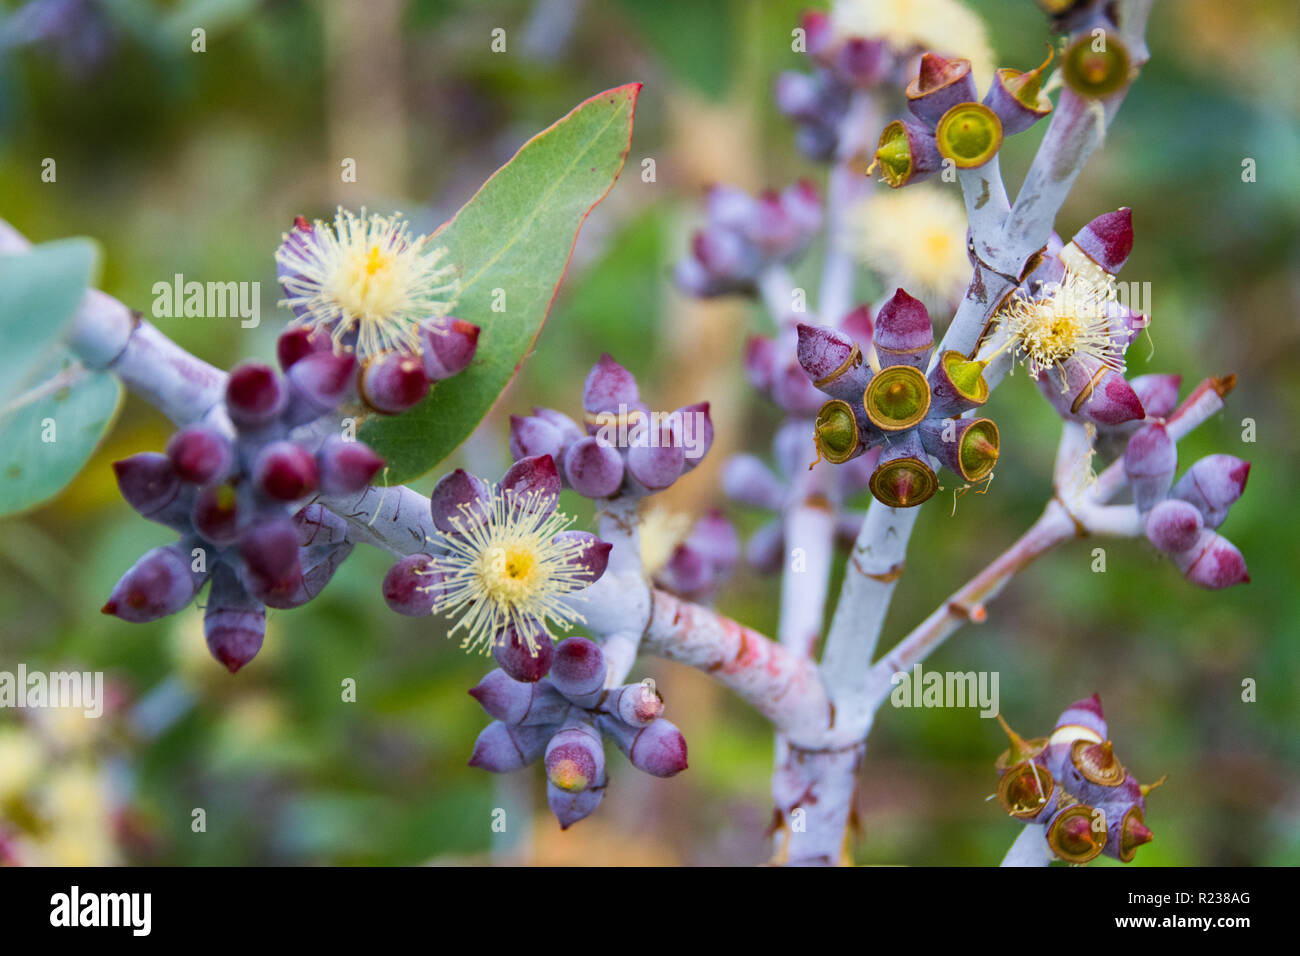 Gumnuts and flowers, Kings Park and Botanic Garden, Perth, Western Australia - Stock Image